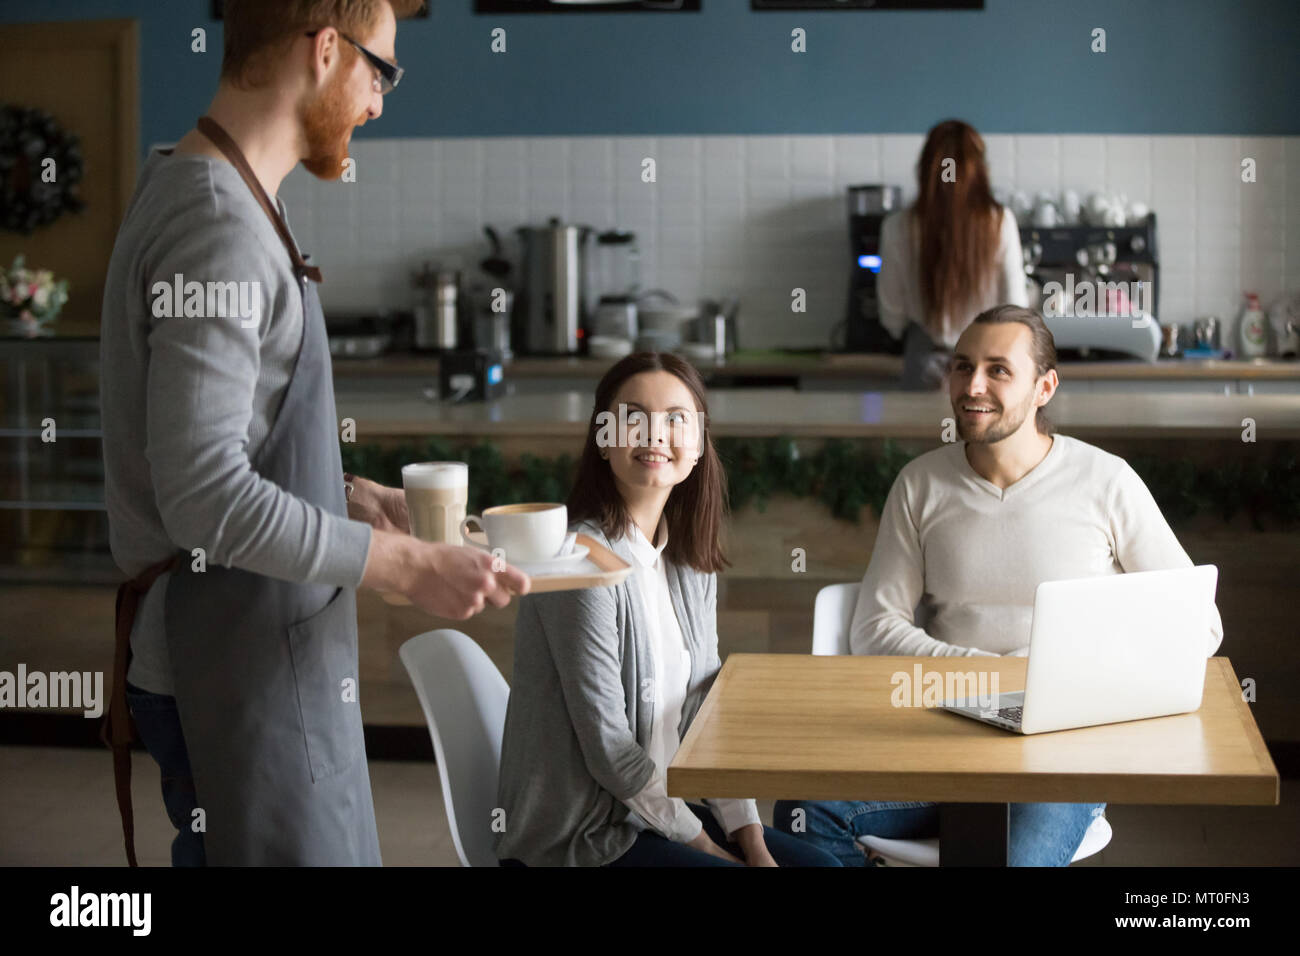 Waiter carrying coffee to smiling couple waiting at cafe table - Stock Image